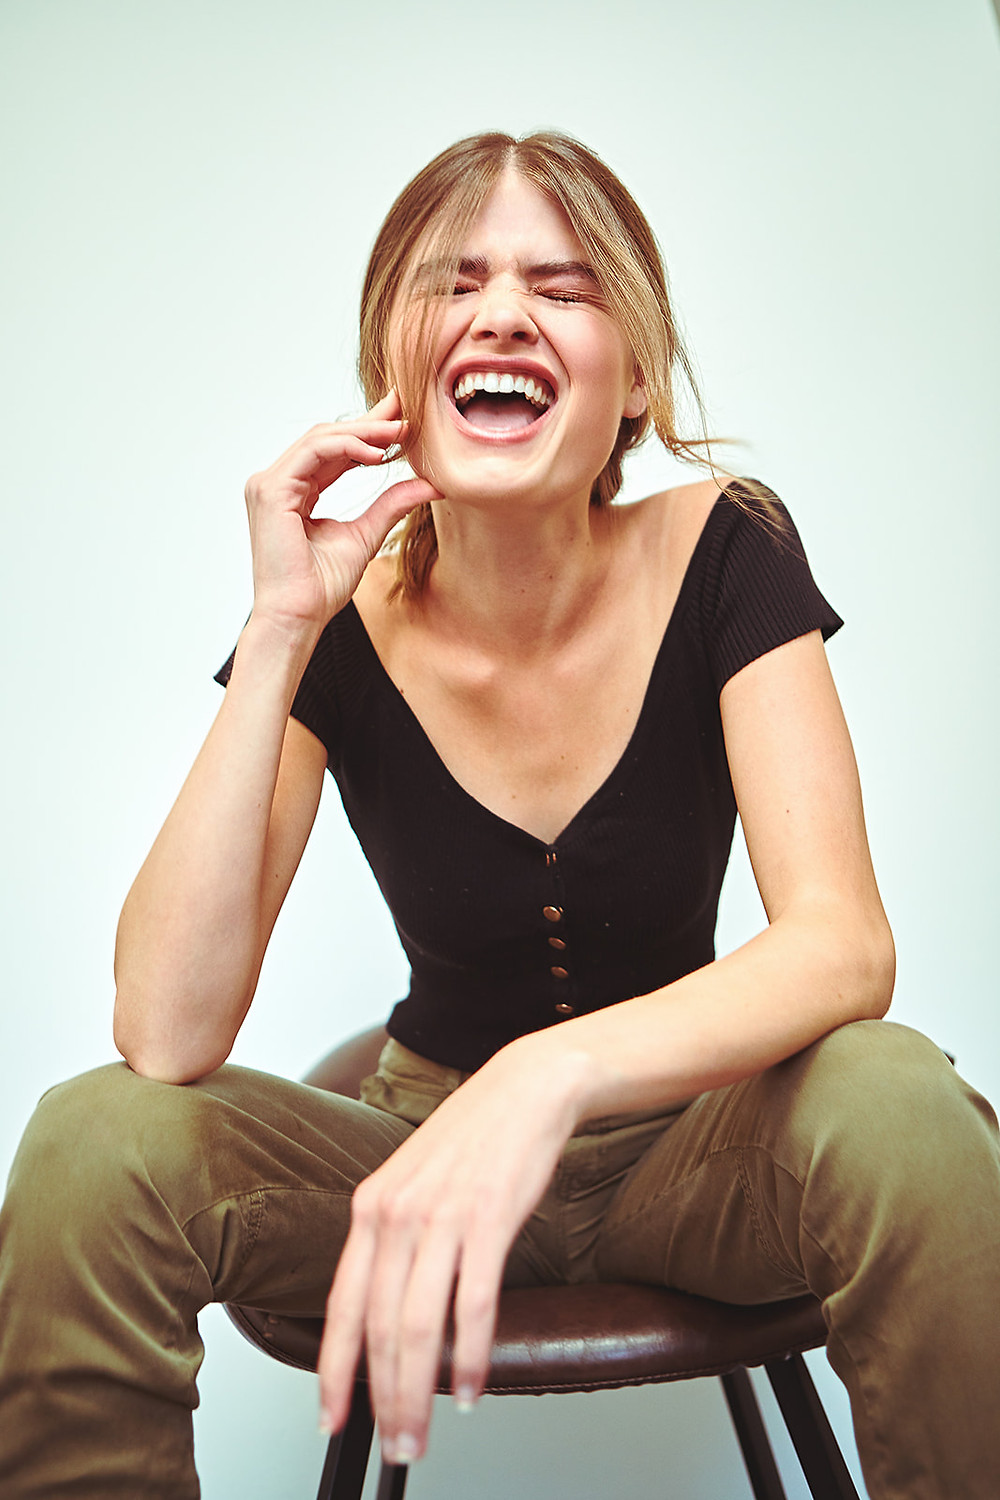 Los Angeles model Payton Maxwell is laughing in a catalog fashion image by photographer Patrick Patton